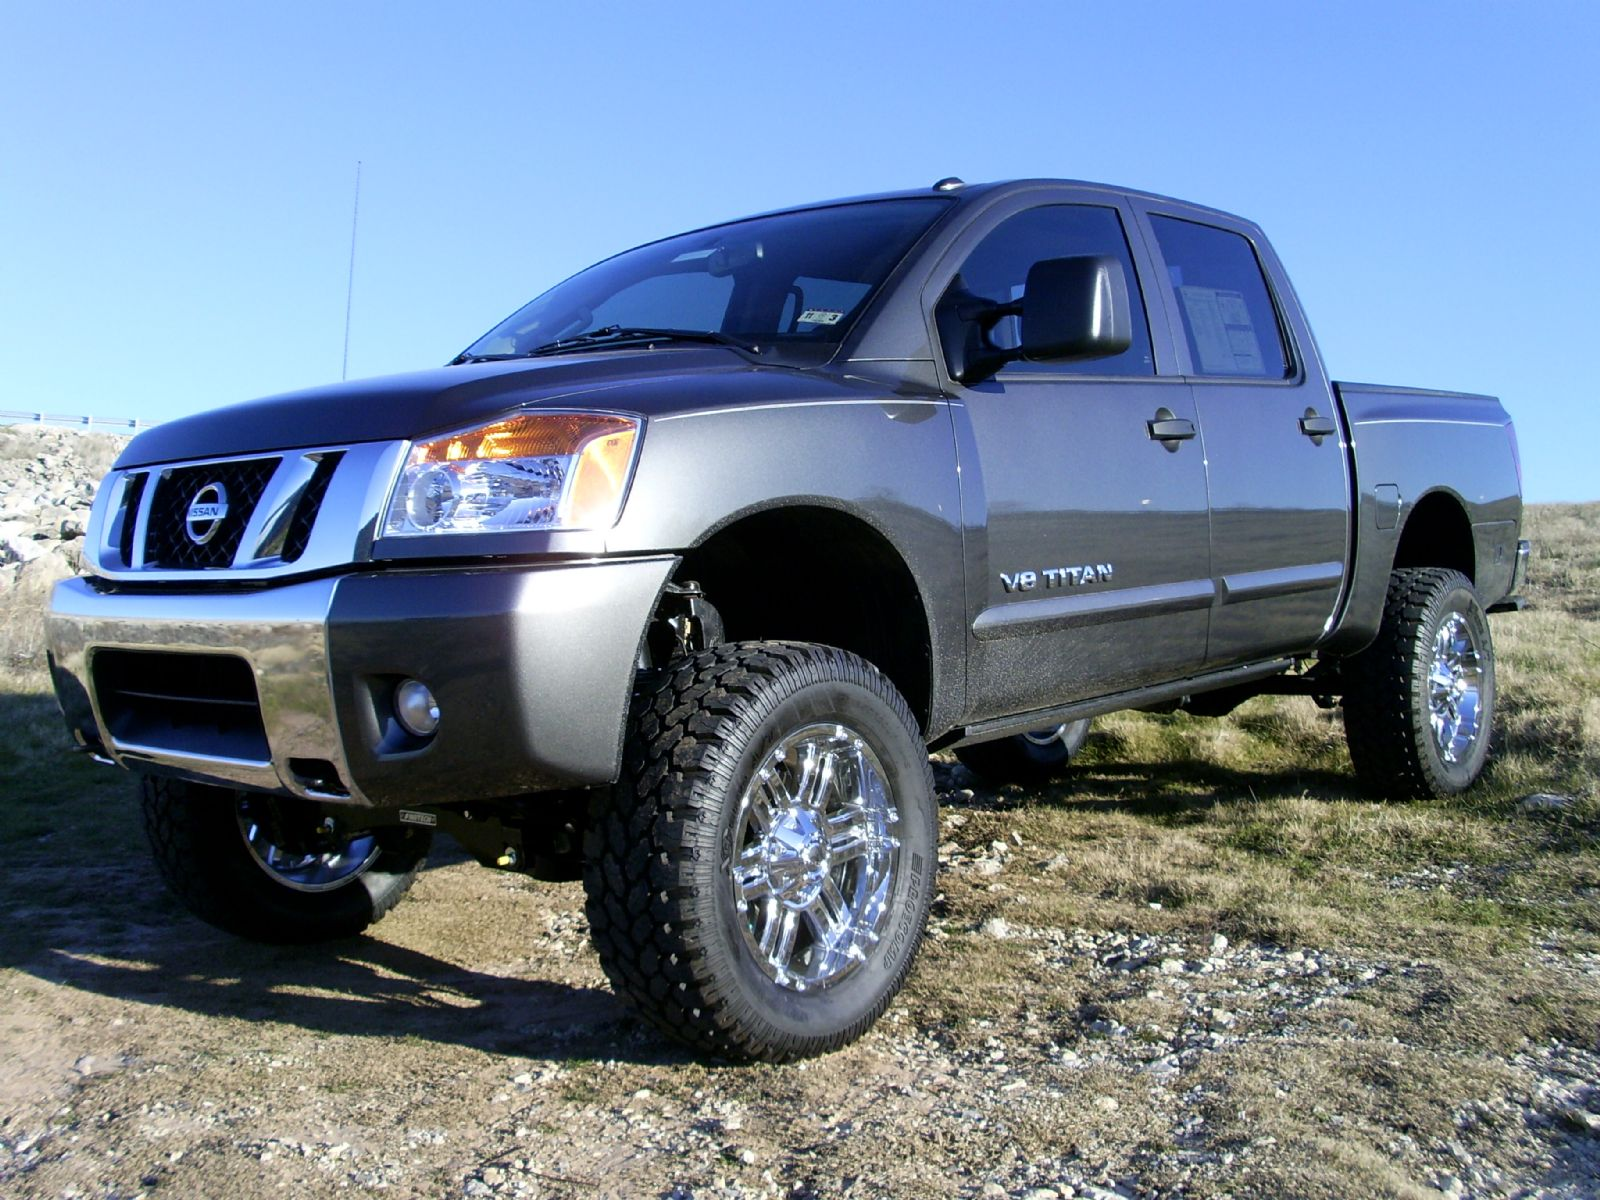 2012 nissan titan sv 4x4 for sale denison tx. Black Bedroom Furniture Sets. Home Design Ideas